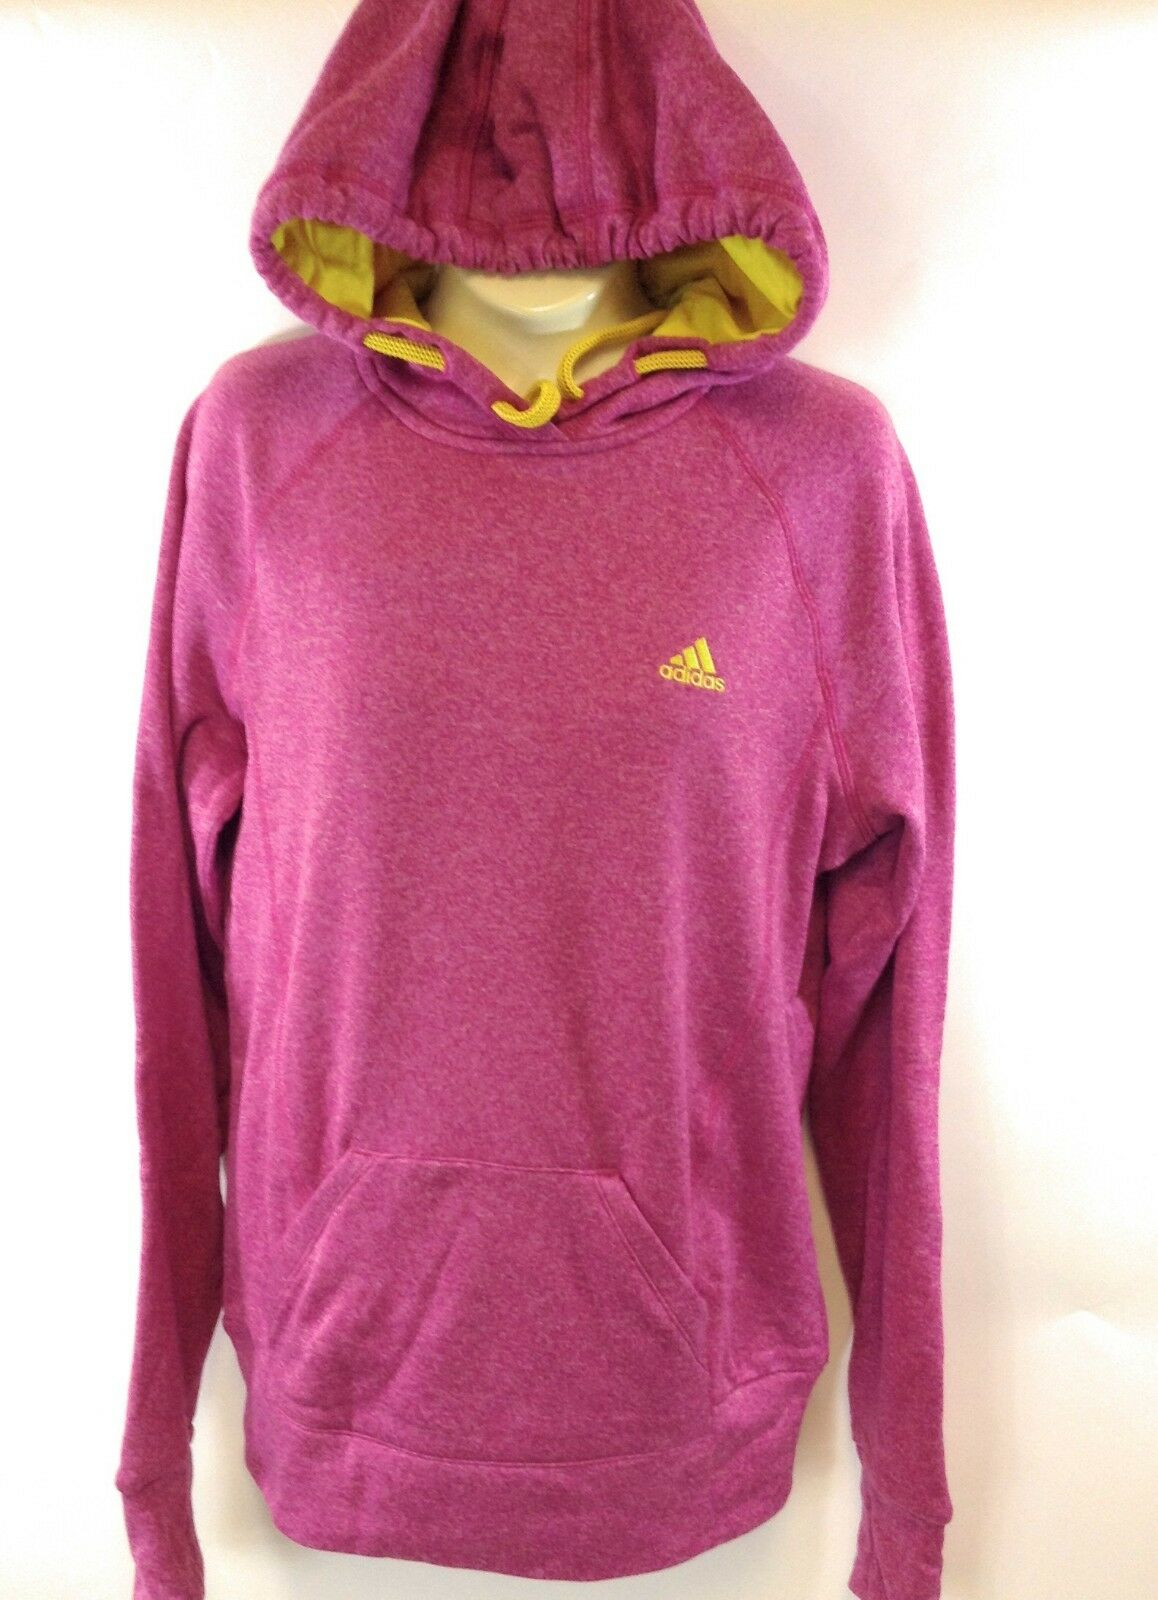 NEW Womens ADIDAS ADIDAS ADIDAS Ultimate G86098 Blast Pink Yellow Pull Over Hoodie Sweatshirt 519723